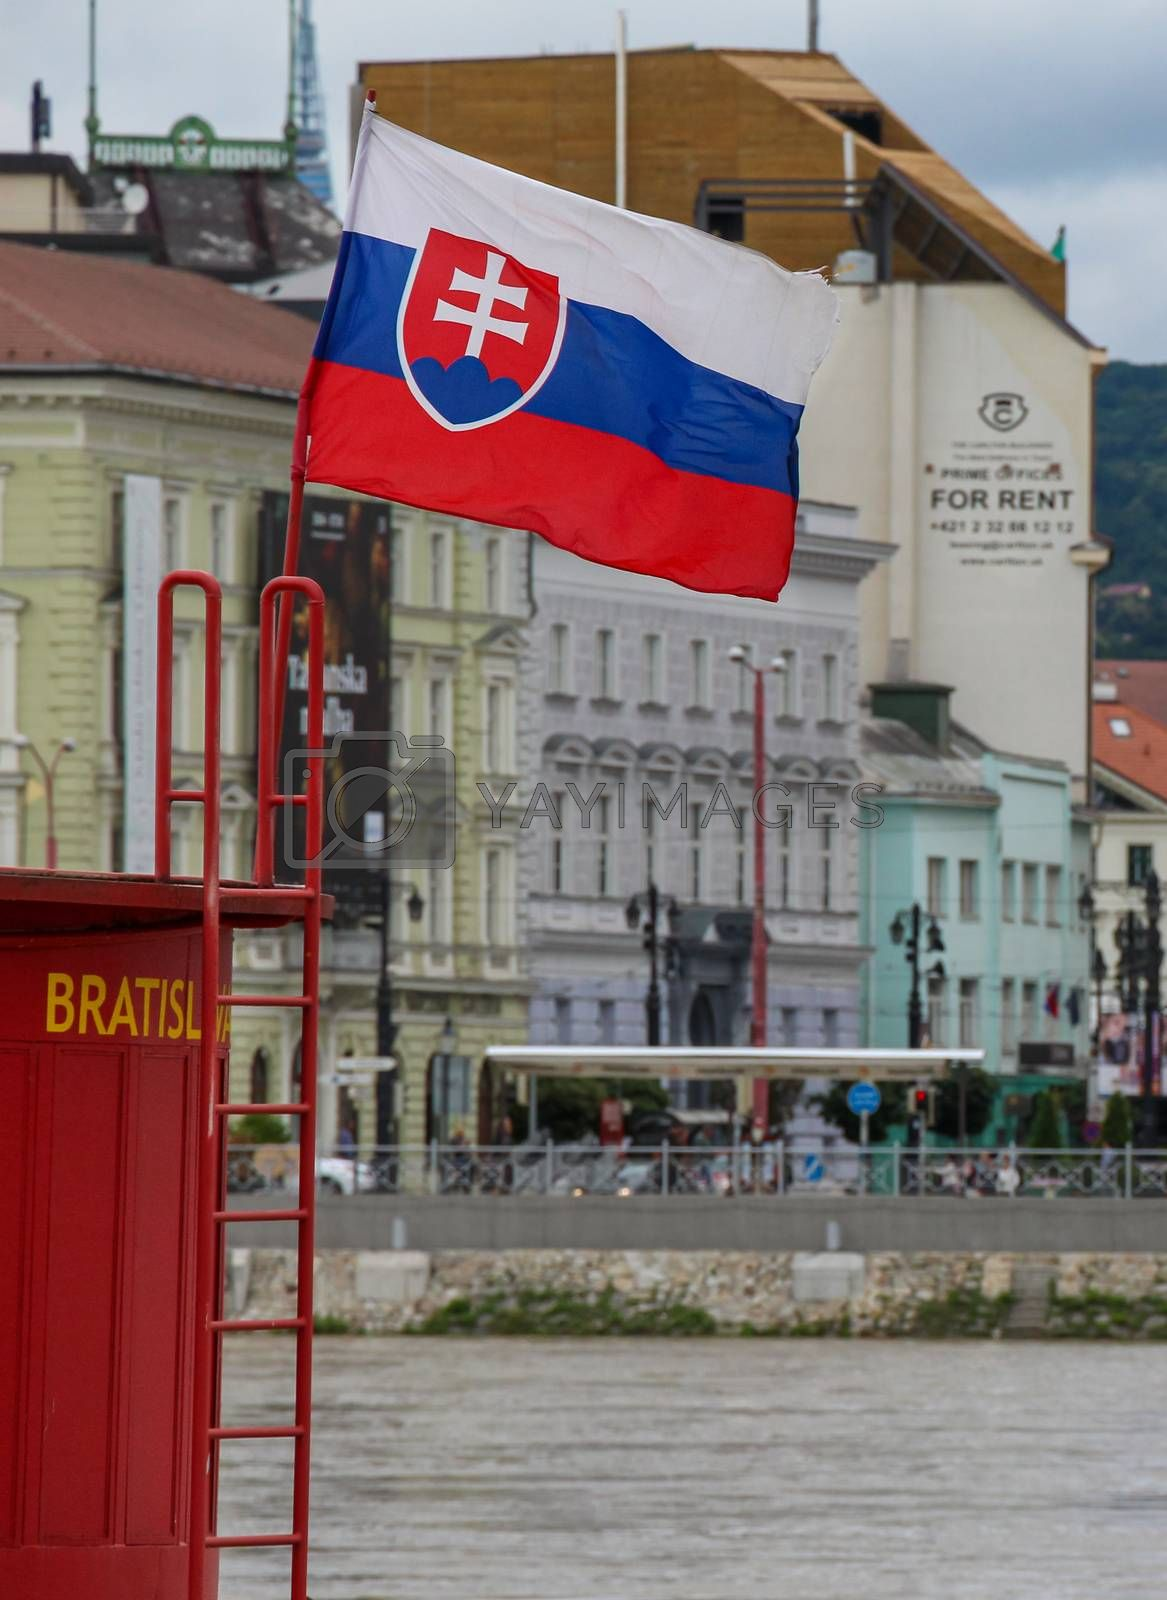 Bratislava, Slovakia - July 5th 2020: The Slovenia flag and Bratislava sign, with a For Rent Sign in the background, Bratislava, Slovakia